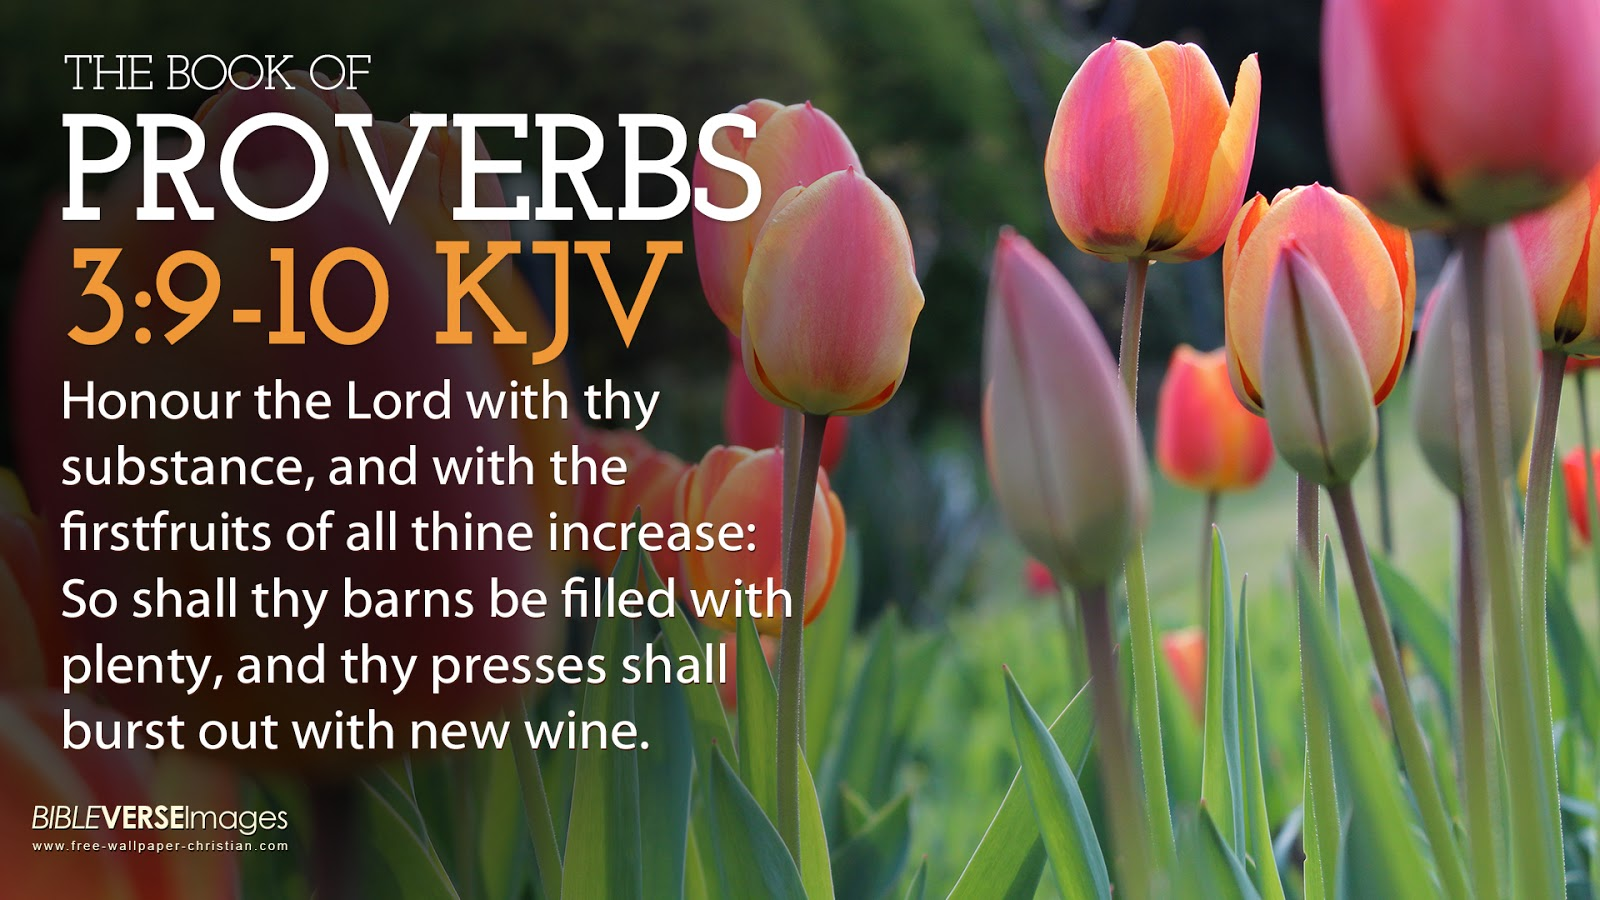 Bible Verse Wallpaper proverbs 3 9 10 King James Versionjpg 1600x900